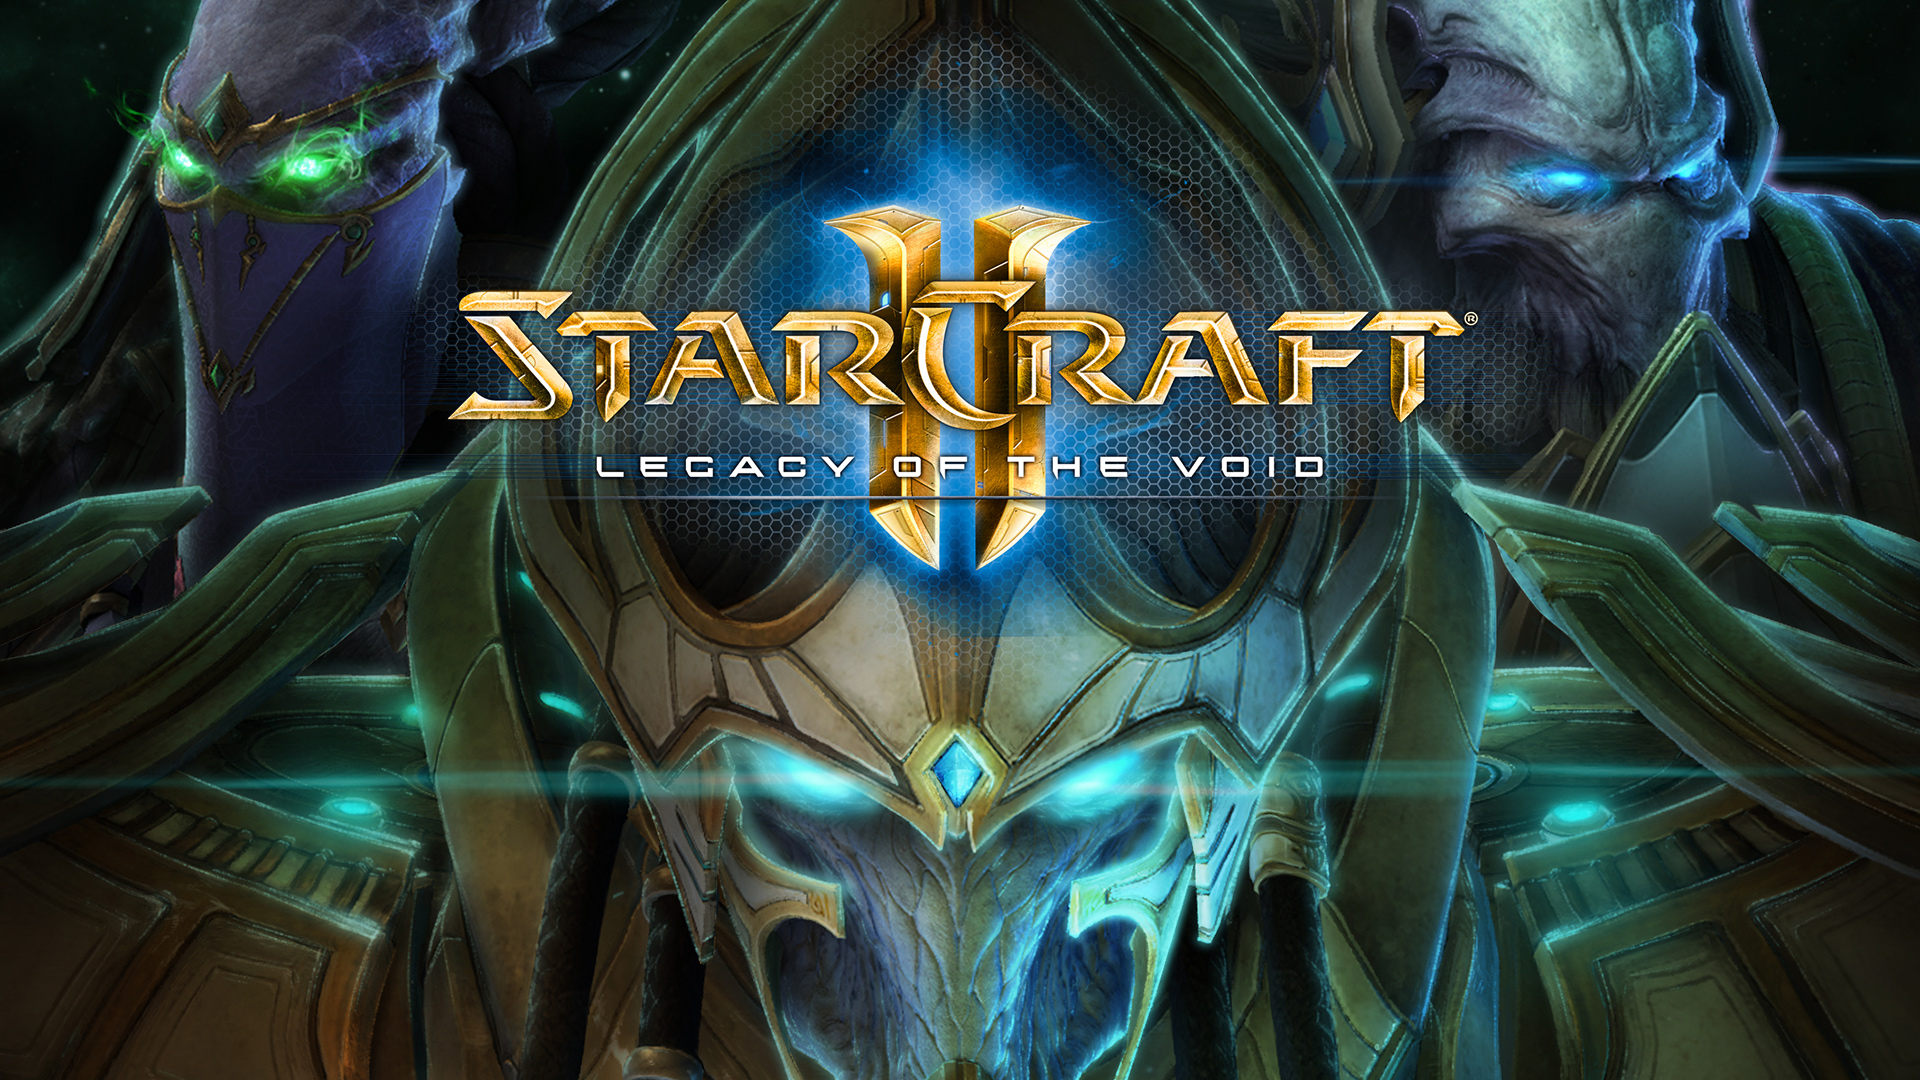 StarCraft II: Legacy of the in starcraft 2 clipart 1920x1080.